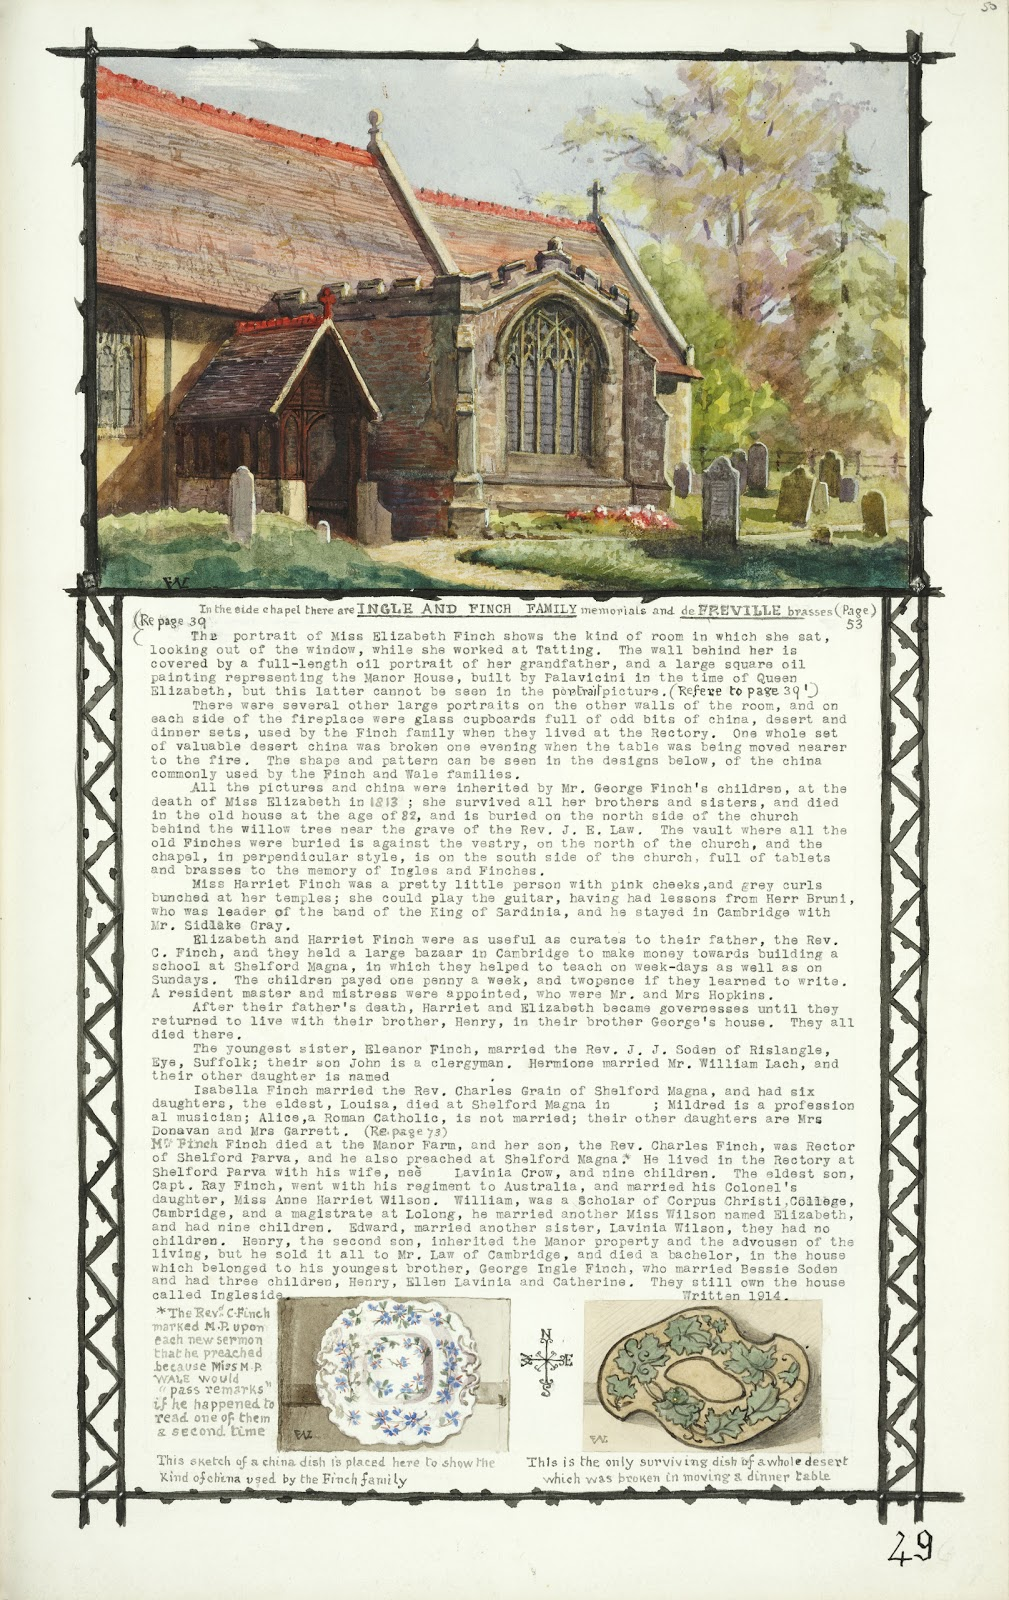 A Record of Shelford Parva by Fanny Wale P49 fo. 50, page 49: A coloured watercolour of the side chapel of All Saints Church with Ingle and Finch family descriptions and biography 1911, two watercolours of plates show the sort of plates used by the Finch family. [fo.38]